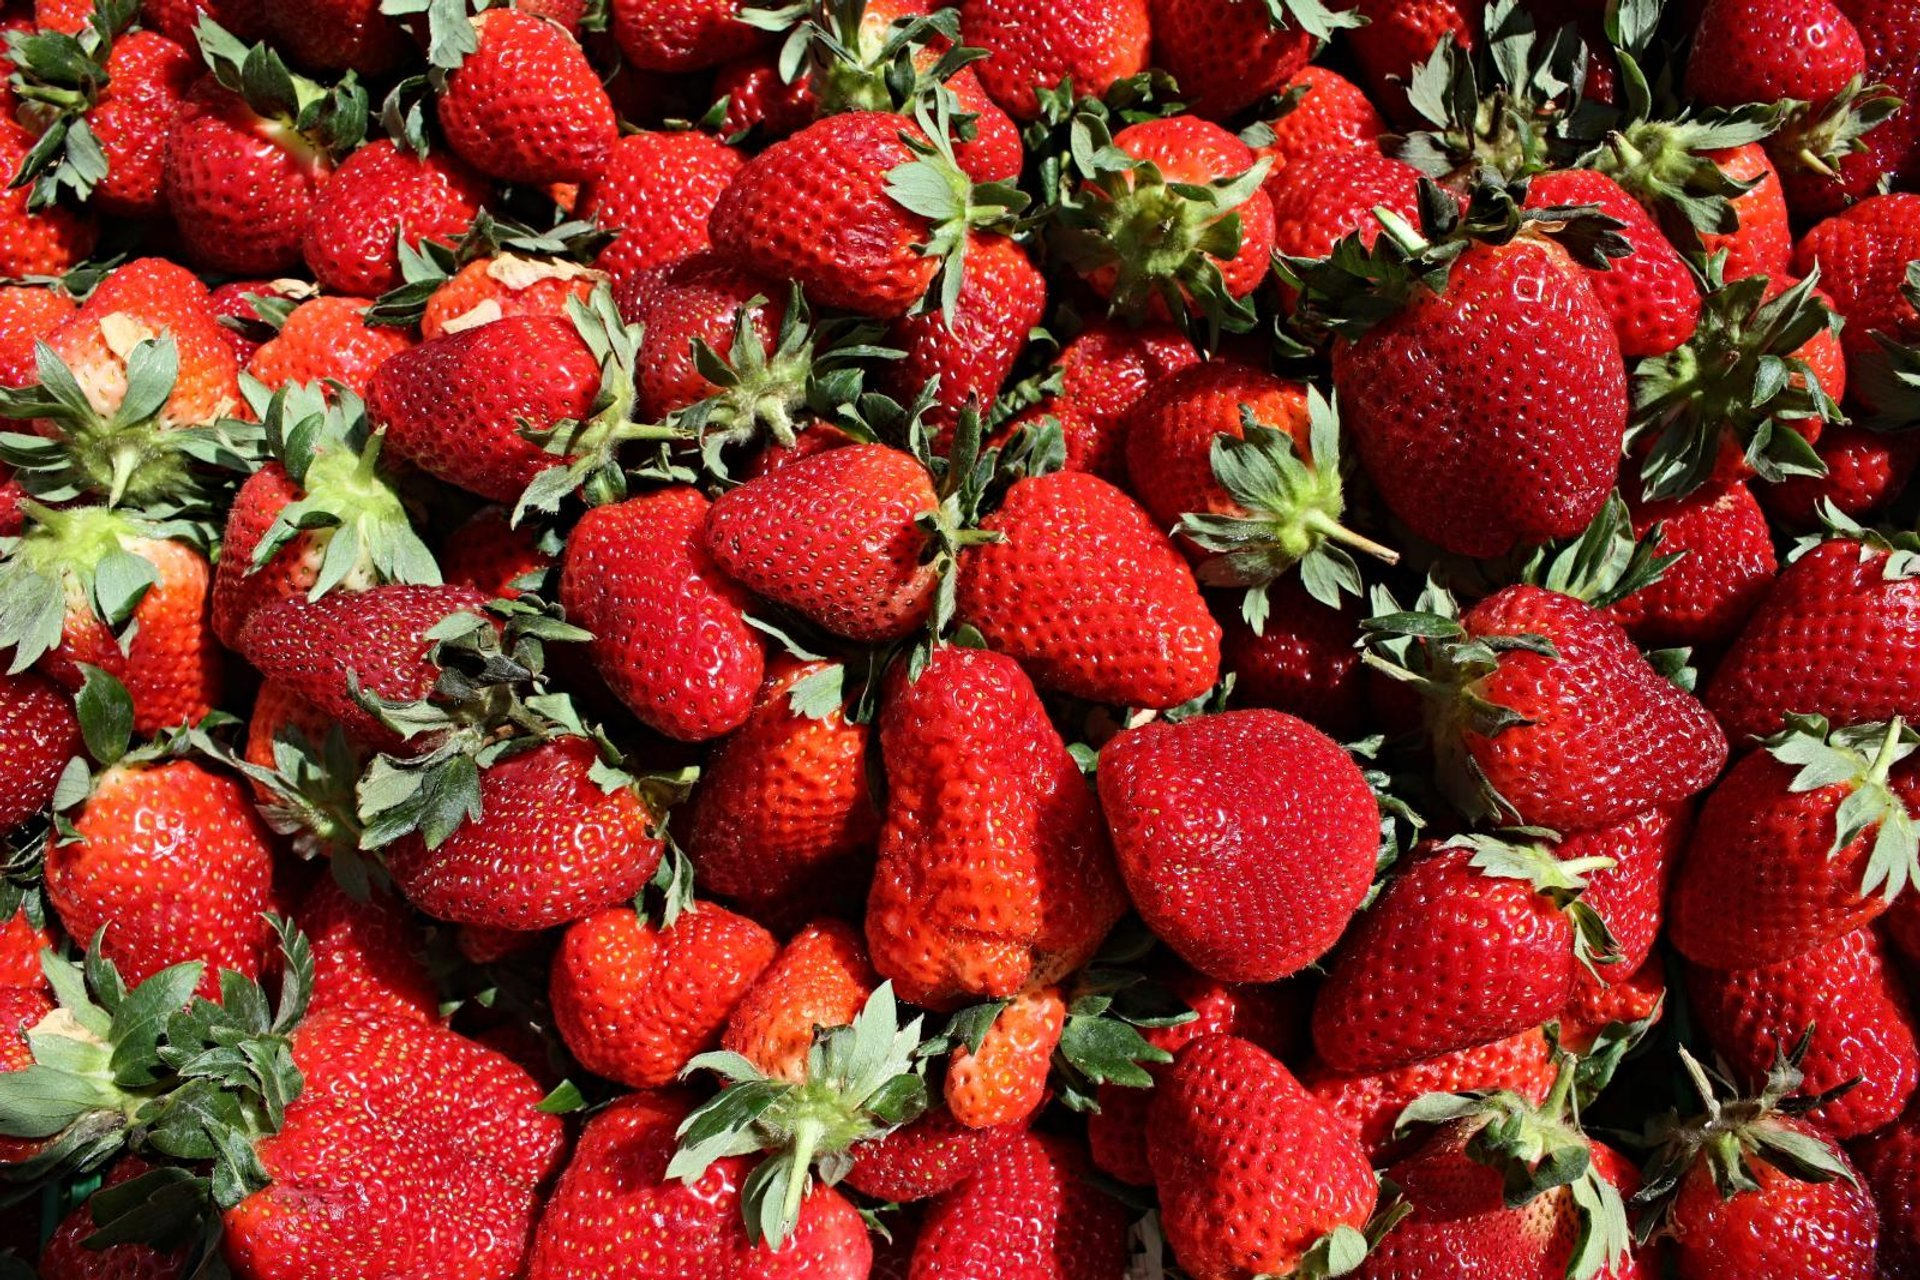 Ponchatoula Strawberry Festival in Louisiana 2020 - Best Time